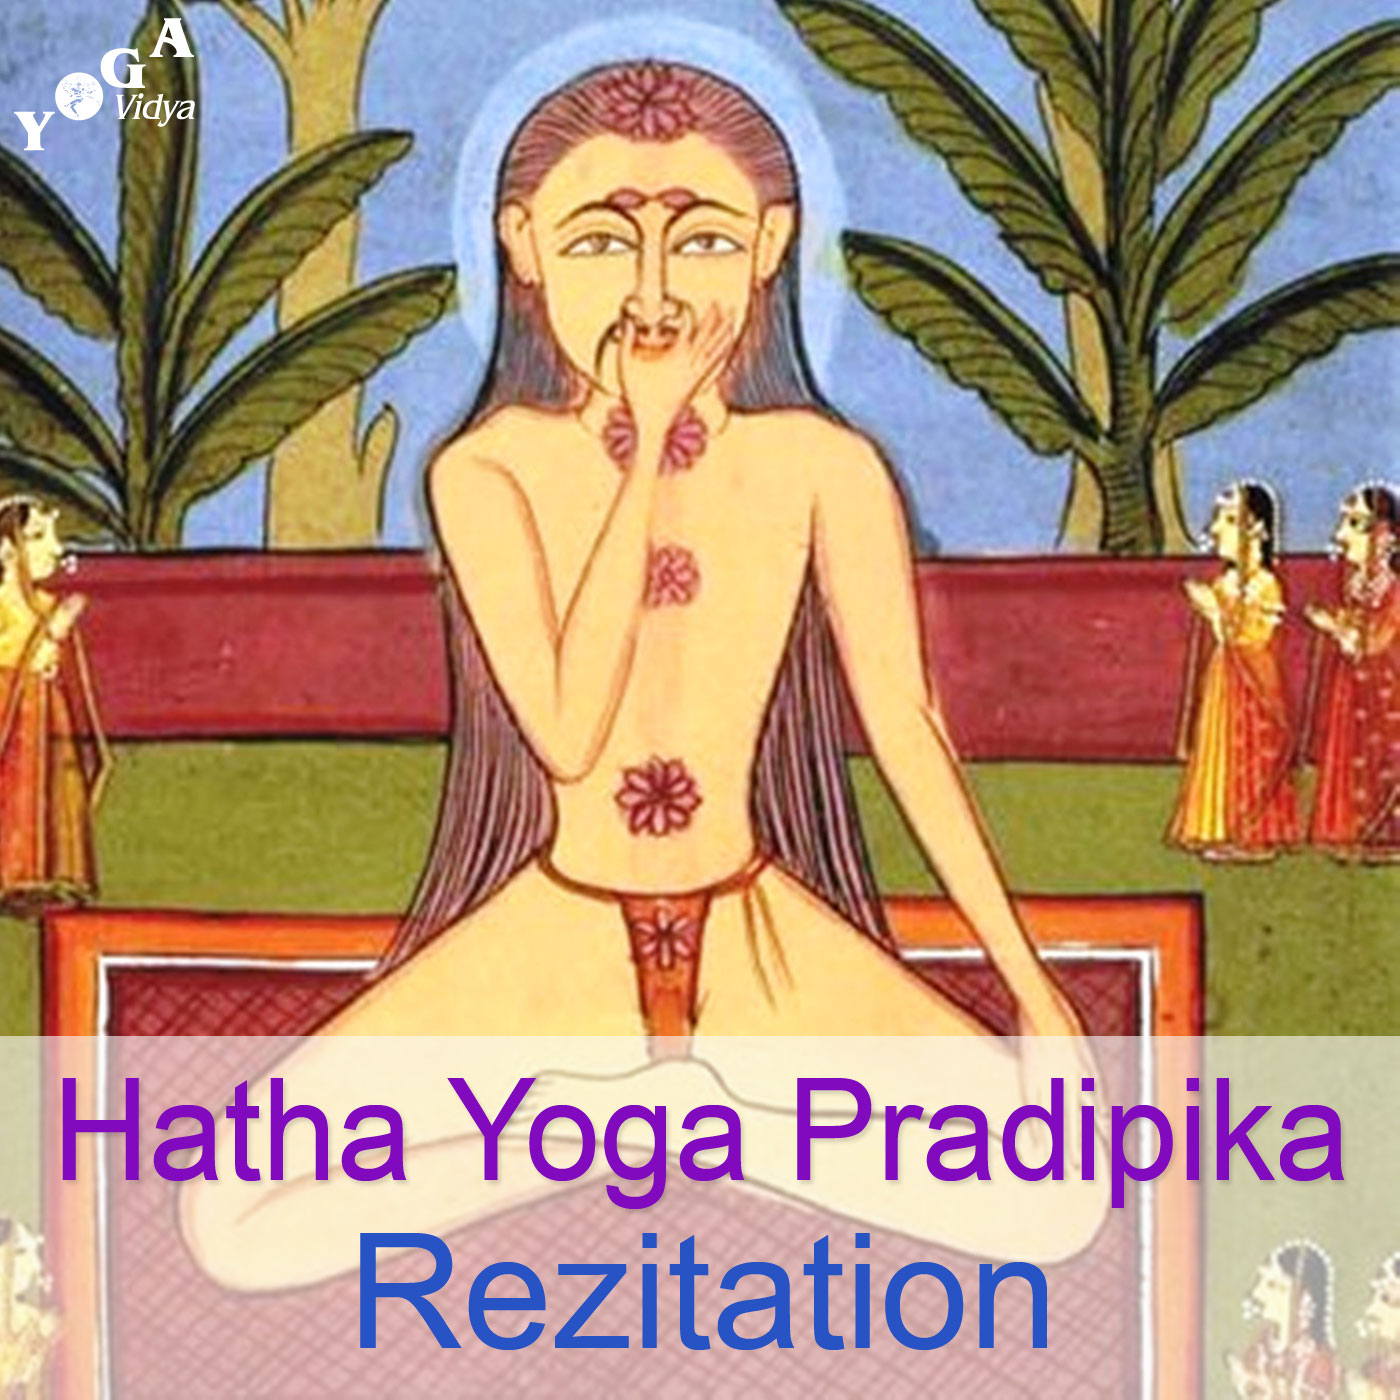 Hatha Yoga Pradipika Recitation